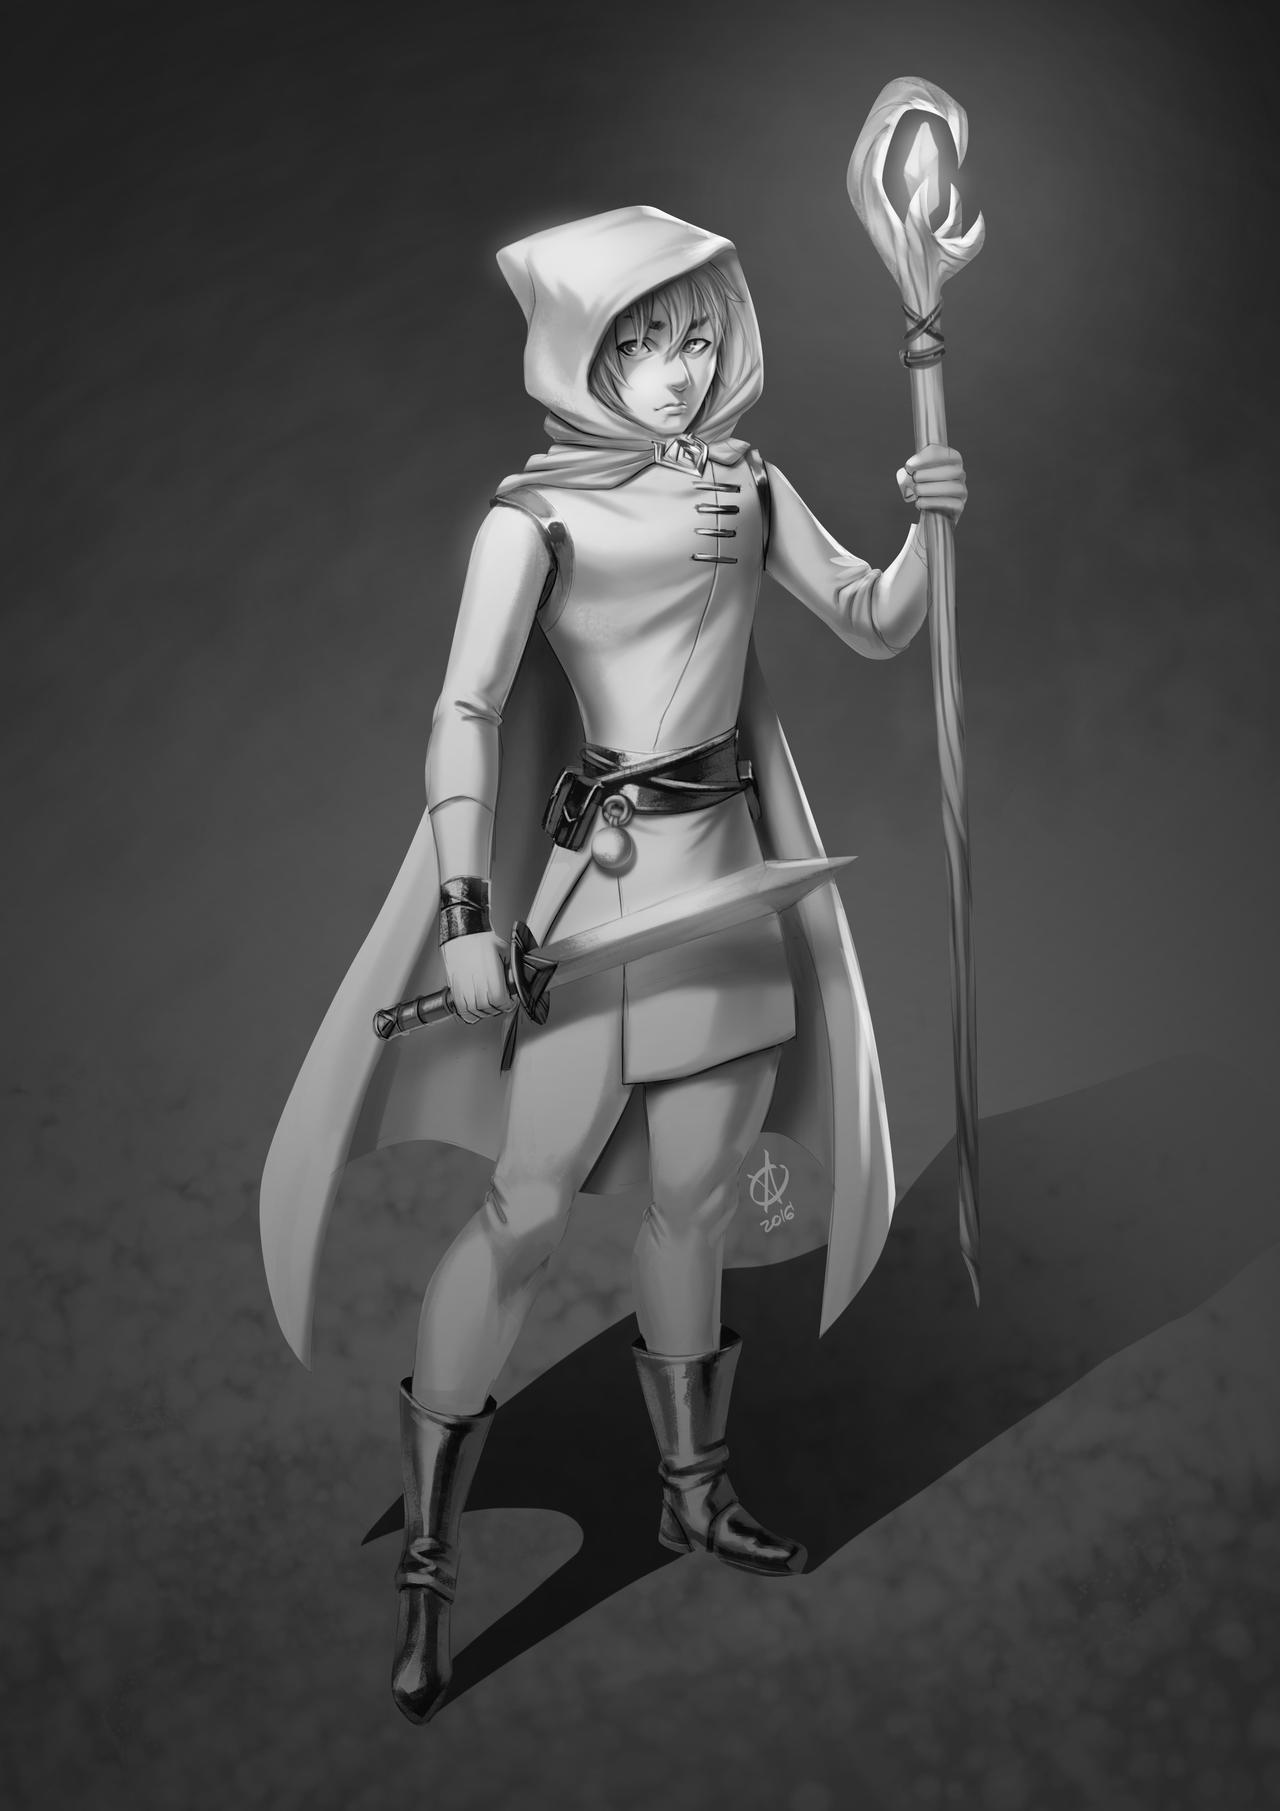 Mage by alanscampos